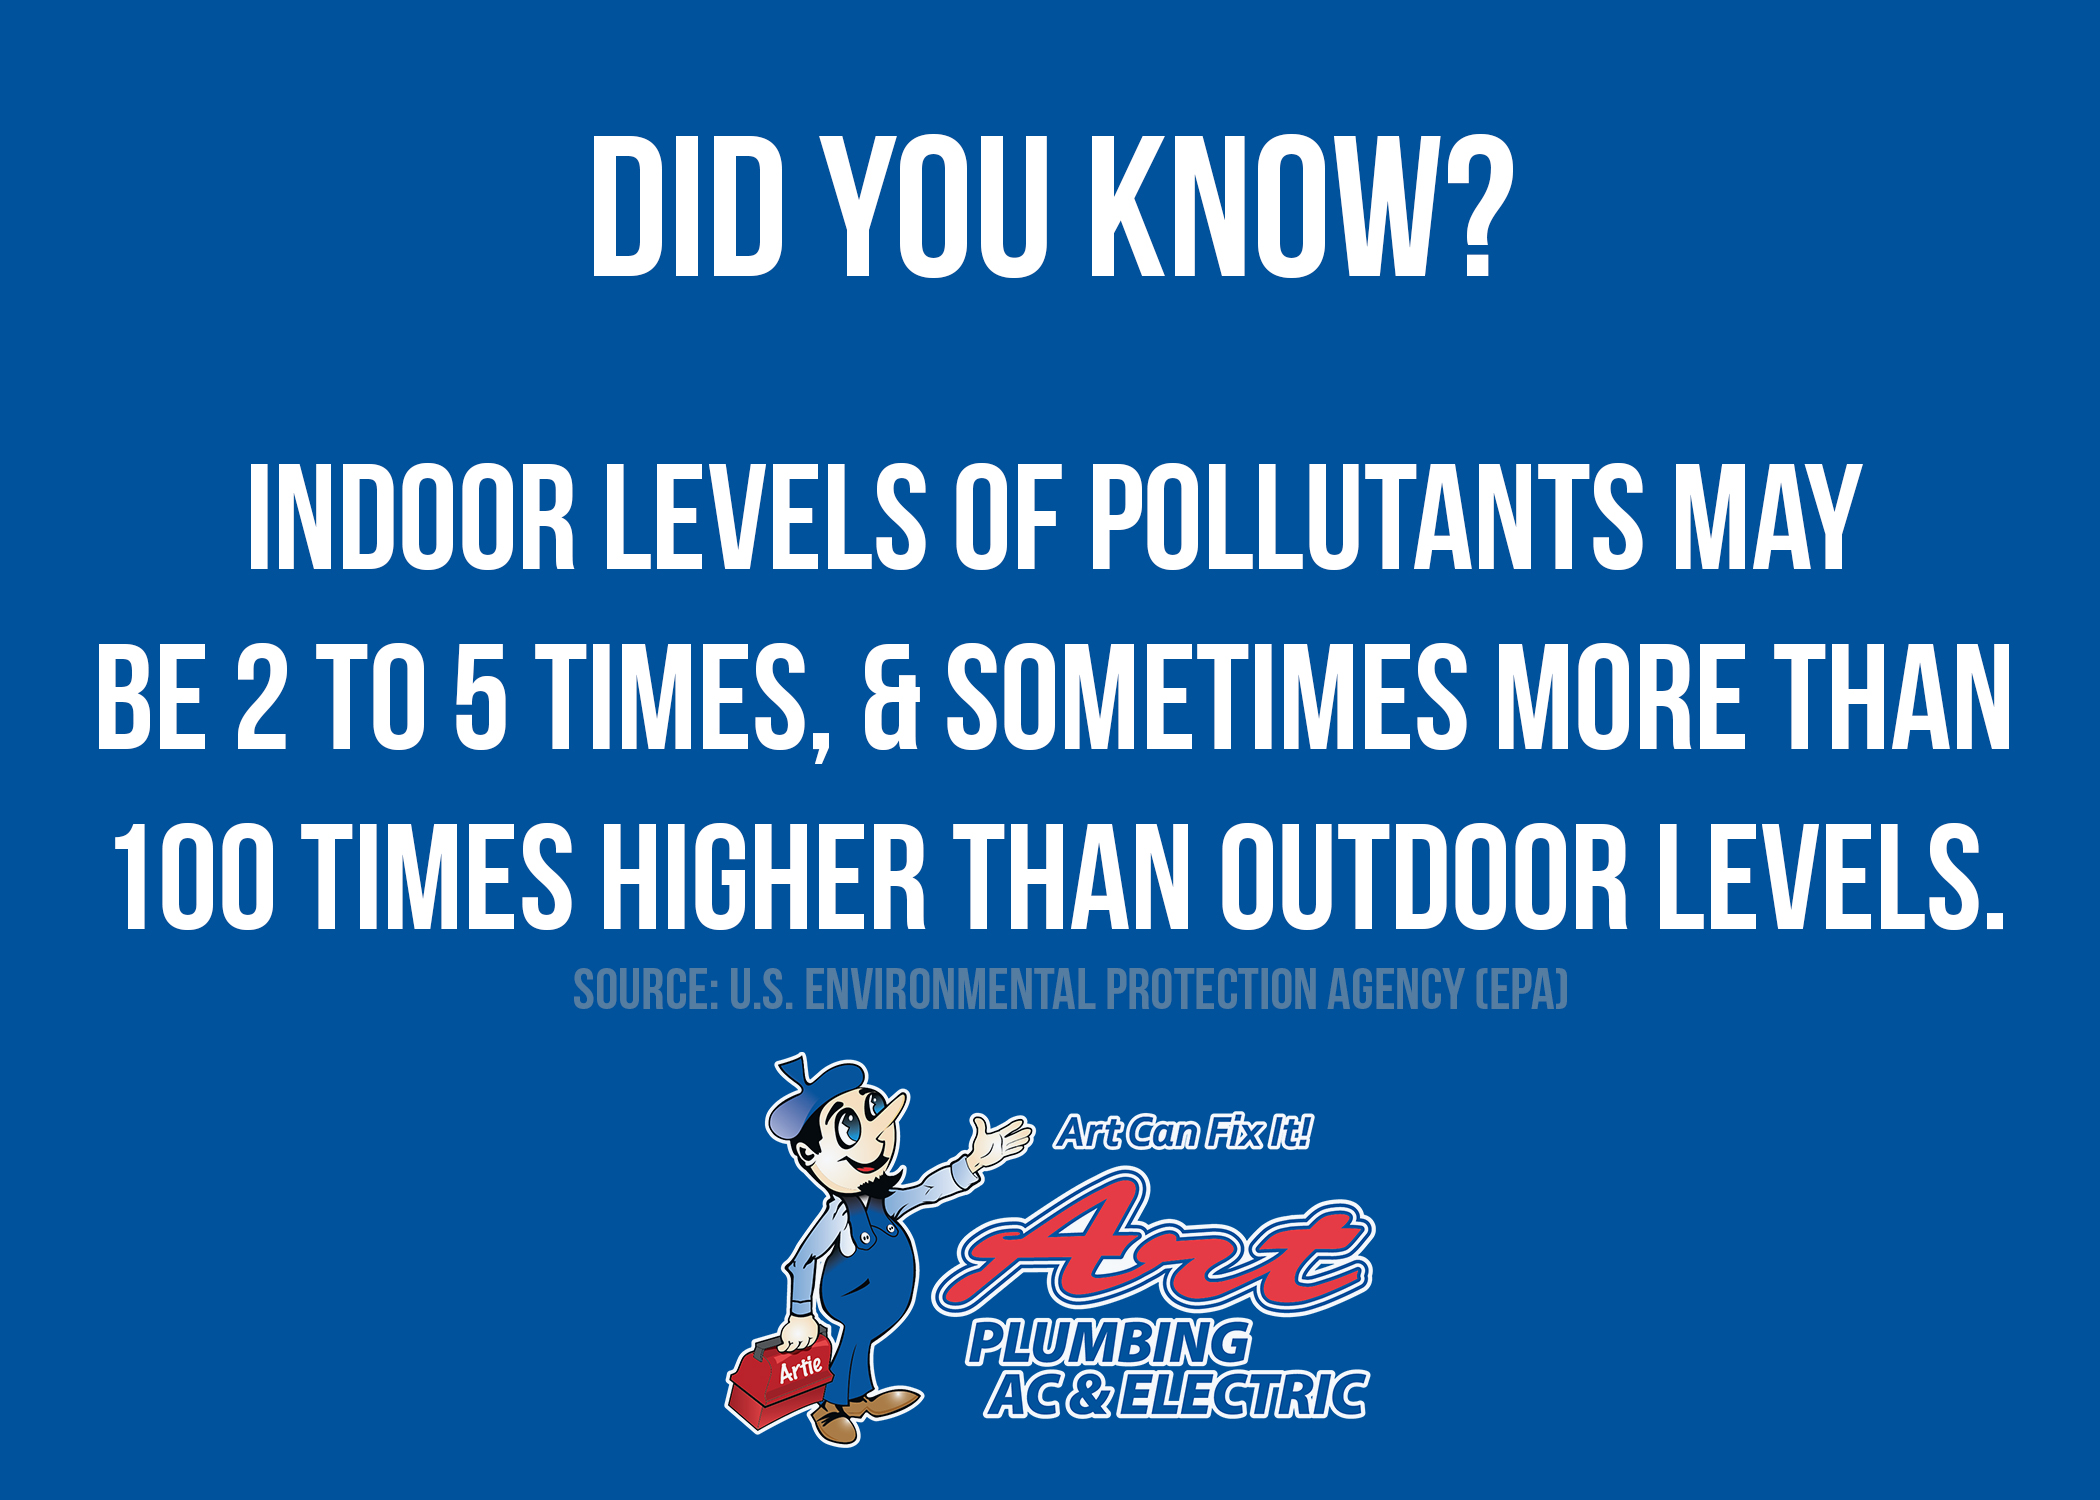 Did You Know Indoor Pollutants May Be 2-5 Times Higher Than Outdoor